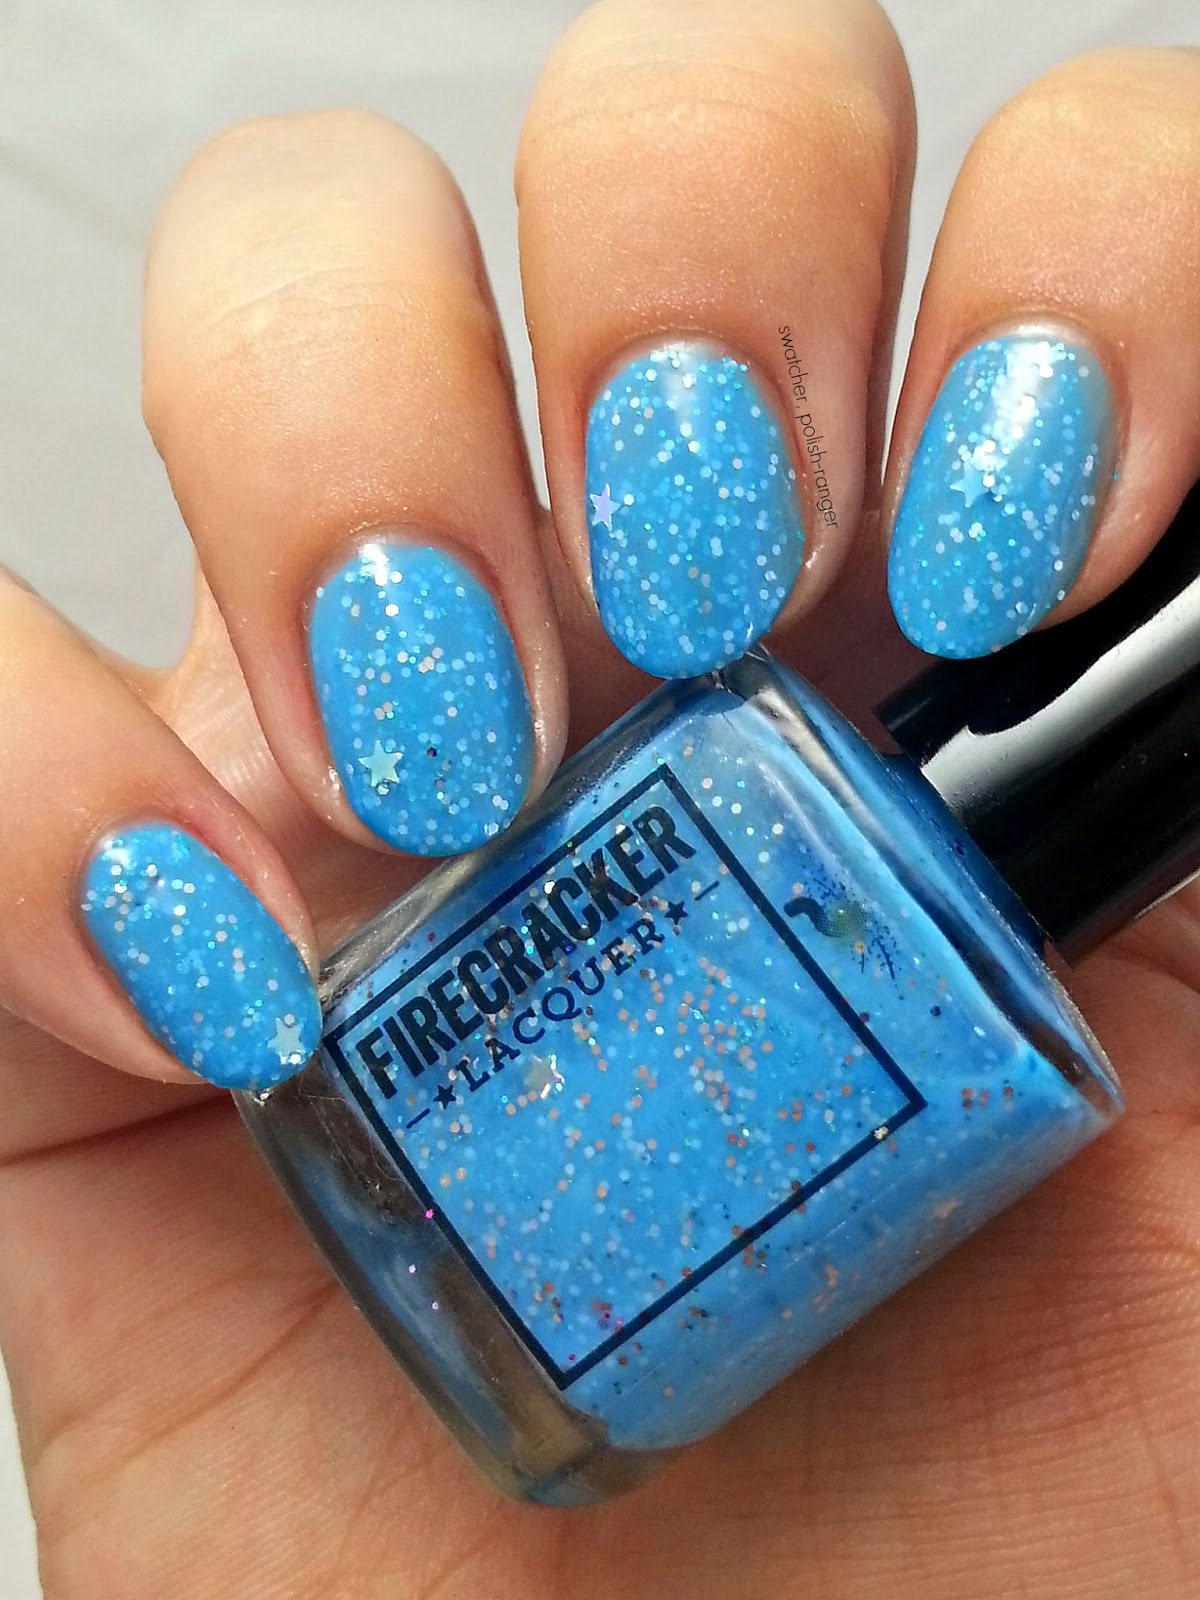 Firecracker Lacquer Starry Sky swatch